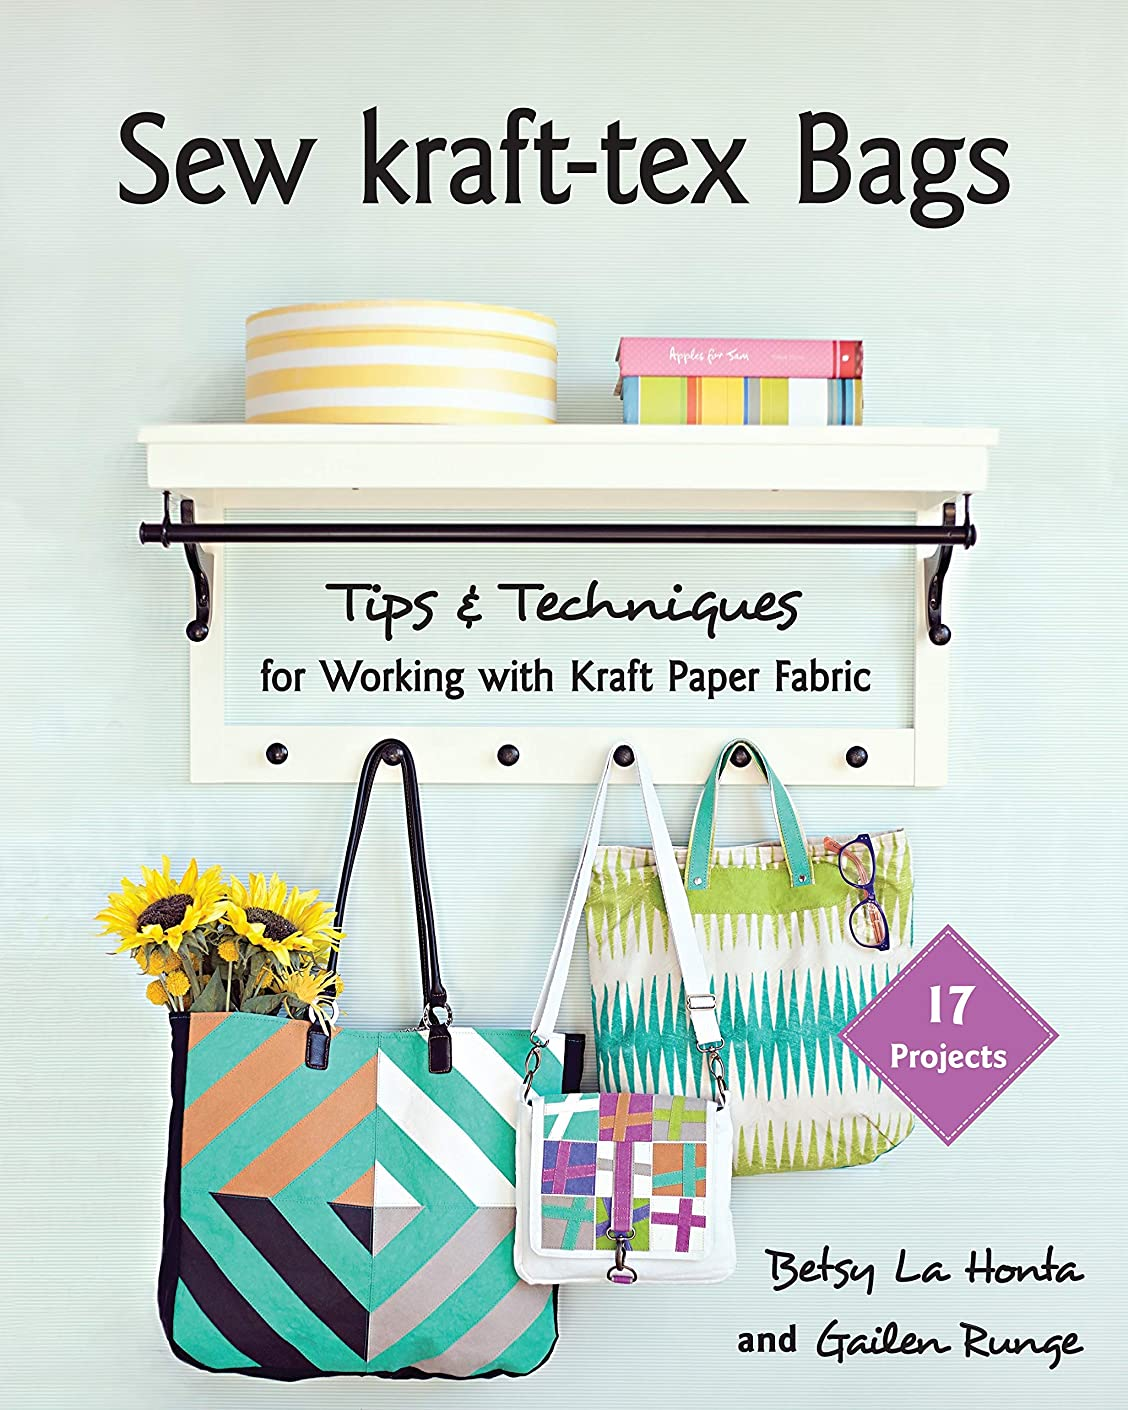 Stash 11320 Sew tex Bags-17 Projects, Tips & Techniques for Working with Kraft Paper Book None